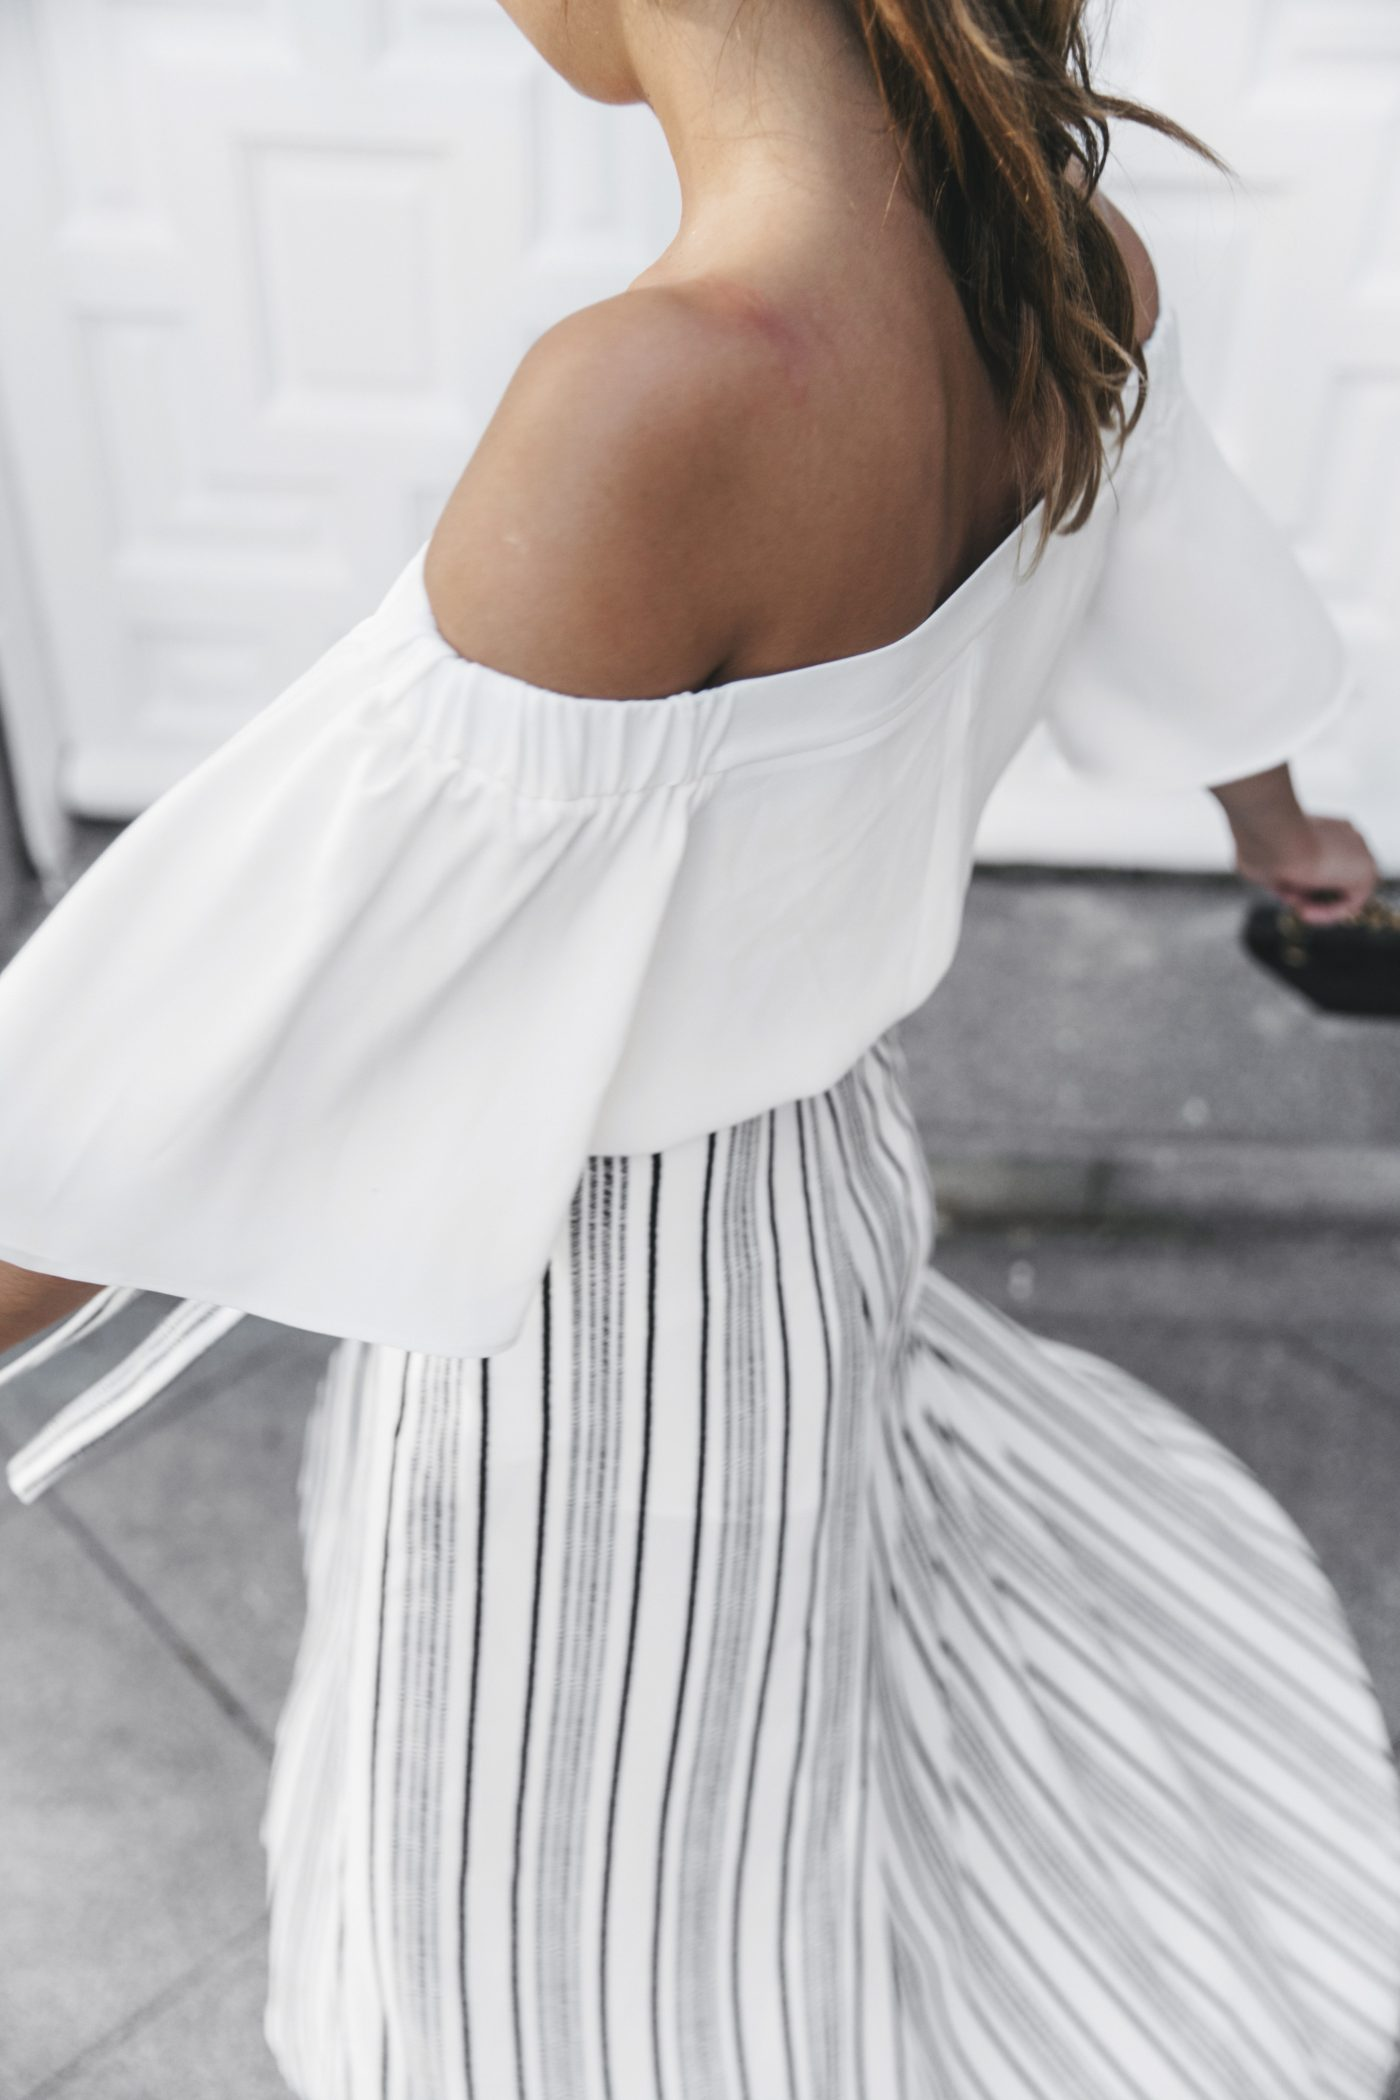 River_Island-El_Imparcial-Striped_SKirt-Off_Shoulders_Top-Lace_Up_Sandals-CHanel_Vintage_Bag-15